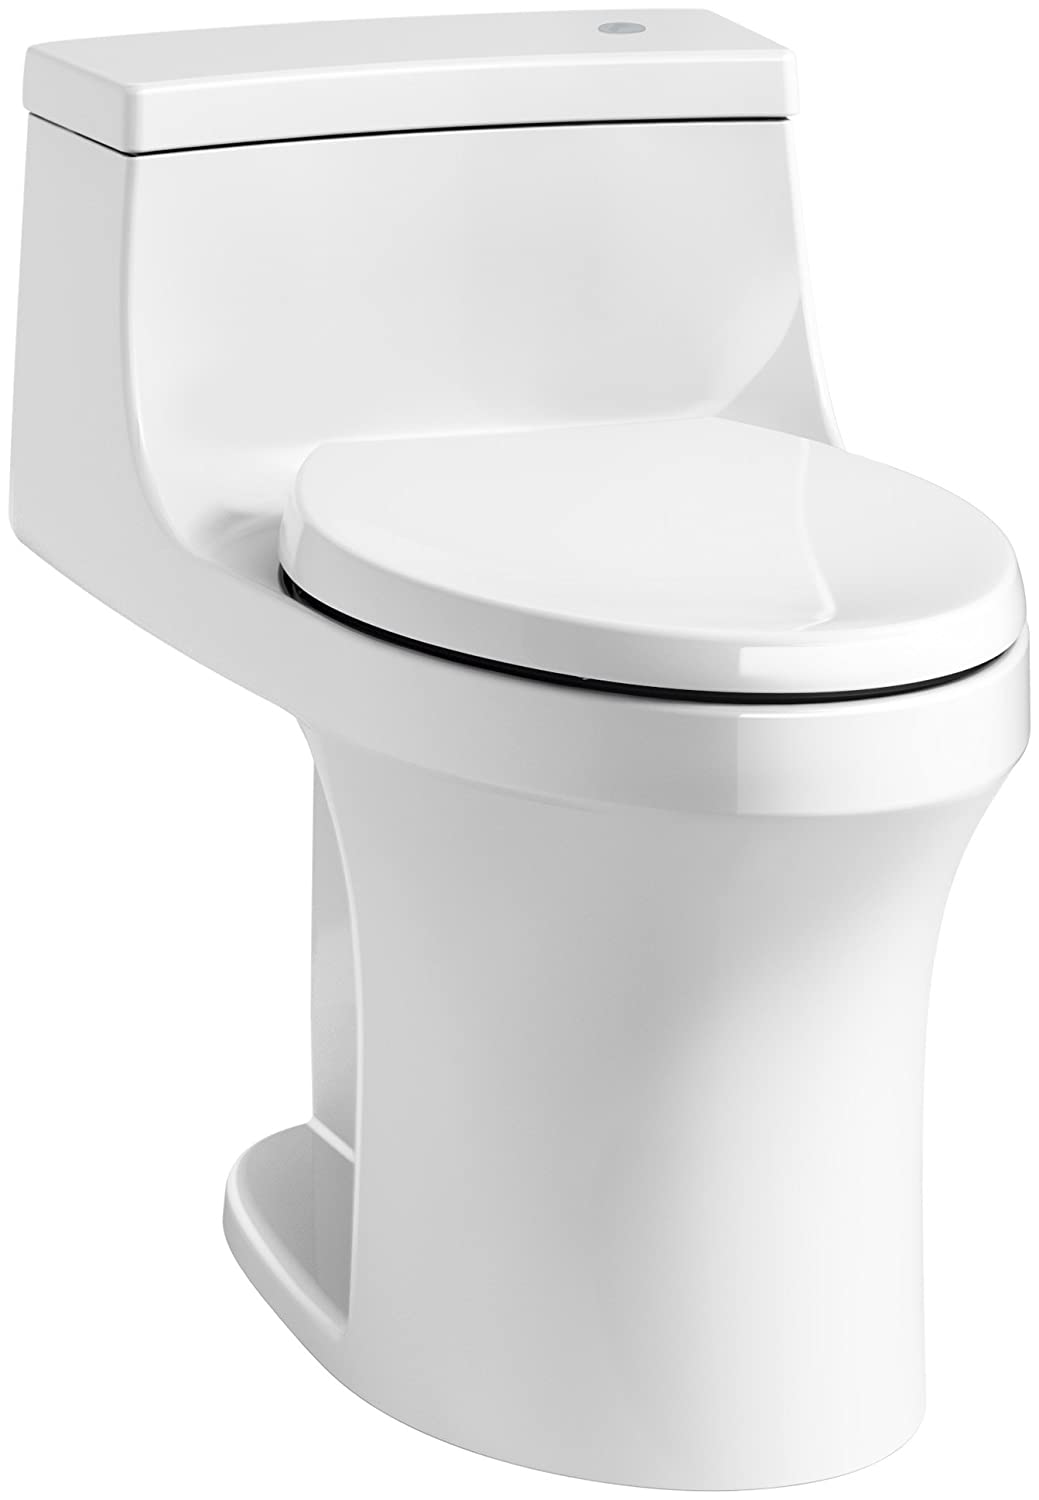 KOHLER K-4000 San Souci Comfort Height Touchless Flush